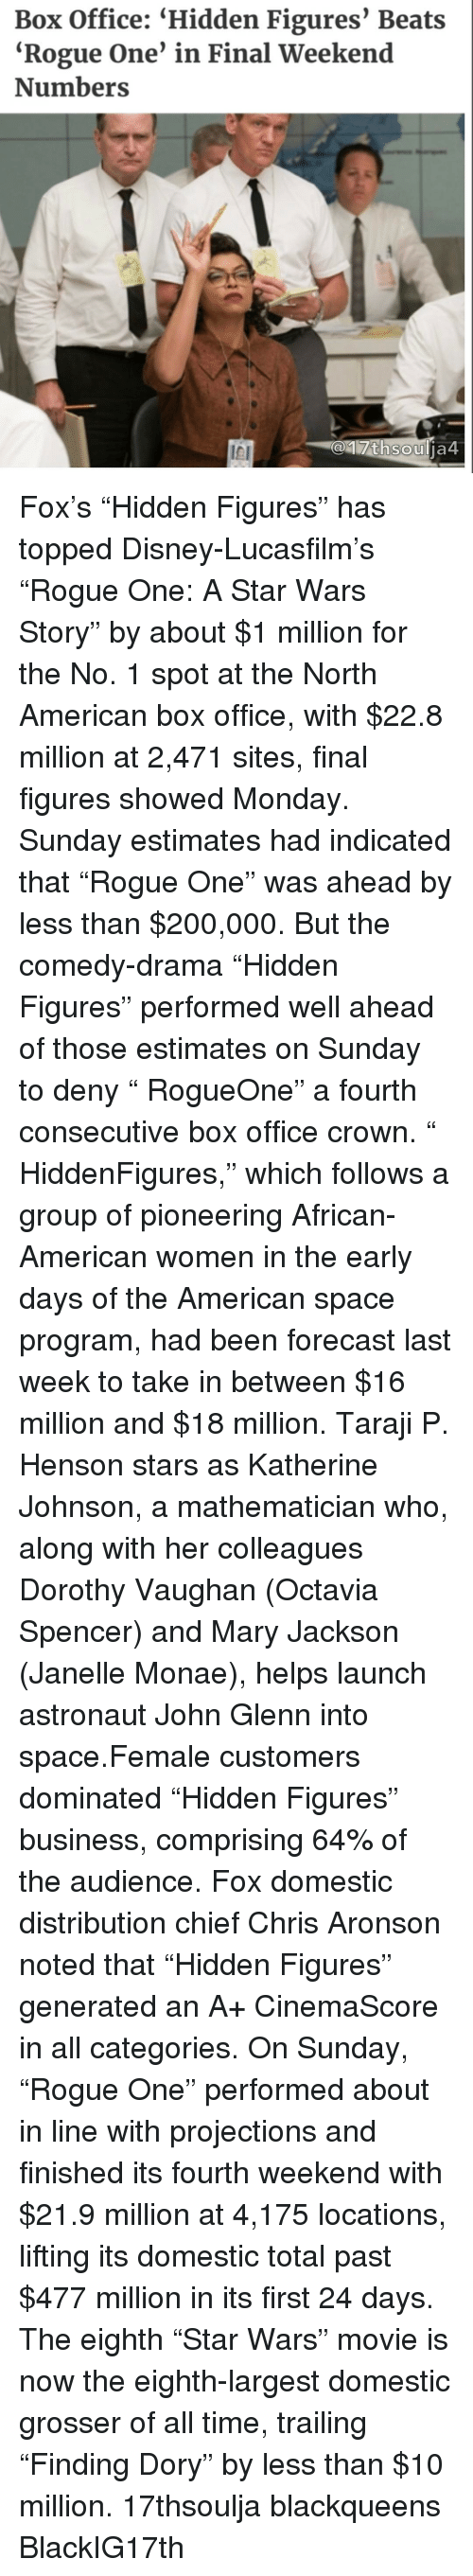 """octavia: Box Office: """"Hidden Figures' Beats  """"Rogue One' in Final Weekend  Numbers  thsou  ja4 Fox's """"Hidden Figures"""" has topped Disney-Lucasfilm's """"Rogue One: A Star Wars Story"""" by about $1 million for the No. 1 spot at the North American box office, with $22.8 million at 2,471 sites, final figures showed Monday. Sunday estimates had indicated that """"Rogue One"""" was ahead by less than $200,000. But the comedy-drama """"Hidden Figures"""" performed well ahead of those estimates on Sunday to deny """" RogueOne"""" a fourth consecutive box office crown. """" HiddenFigures,"""" which follows a group of pioneering African-American women in the early days of the American space program, had been forecast last week to take in between $16 million and $18 million. Taraji P. Henson stars as Katherine Johnson, a mathematician who, along with her colleagues Dorothy Vaughan (Octavia Spencer) and Mary Jackson (Janelle Monae), helps launch astronaut John Glenn into space.Female customers dominated """"Hidden Figures"""" business, comprising 64% of the audience. Fox domestic distribution chief Chris Aronson noted that """"Hidden Figures"""" generated an A+ CinemaScore in all categories. On Sunday, """"Rogue One"""" performed about in line with projections and finished its fourth weekend with $21.9 million at 4,175 locations, lifting its domestic total past $477 million in its first 24 days. The eighth """"Star Wars"""" movie is now the eighth-largest domestic grosser of all time, trailing """"Finding Dory"""" by less than $10 million. 17thsoulja blackqueens BlackIG17th"""